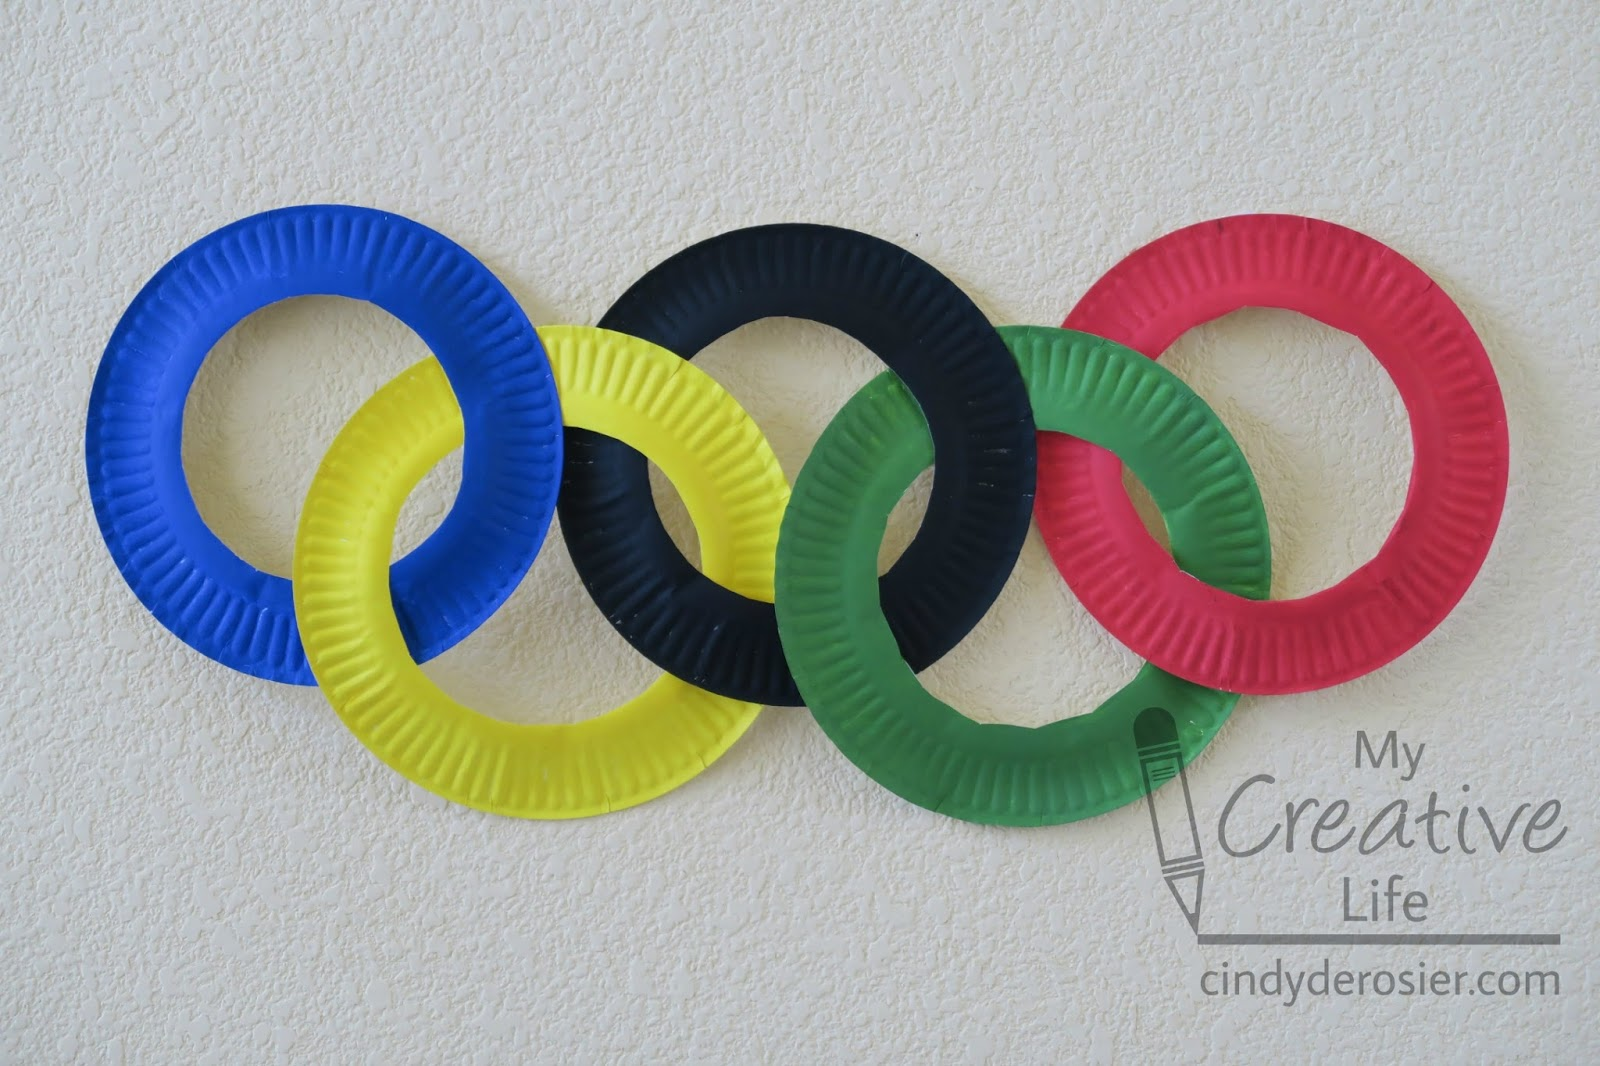 cindy derosier my creative life paper plate olympic rings